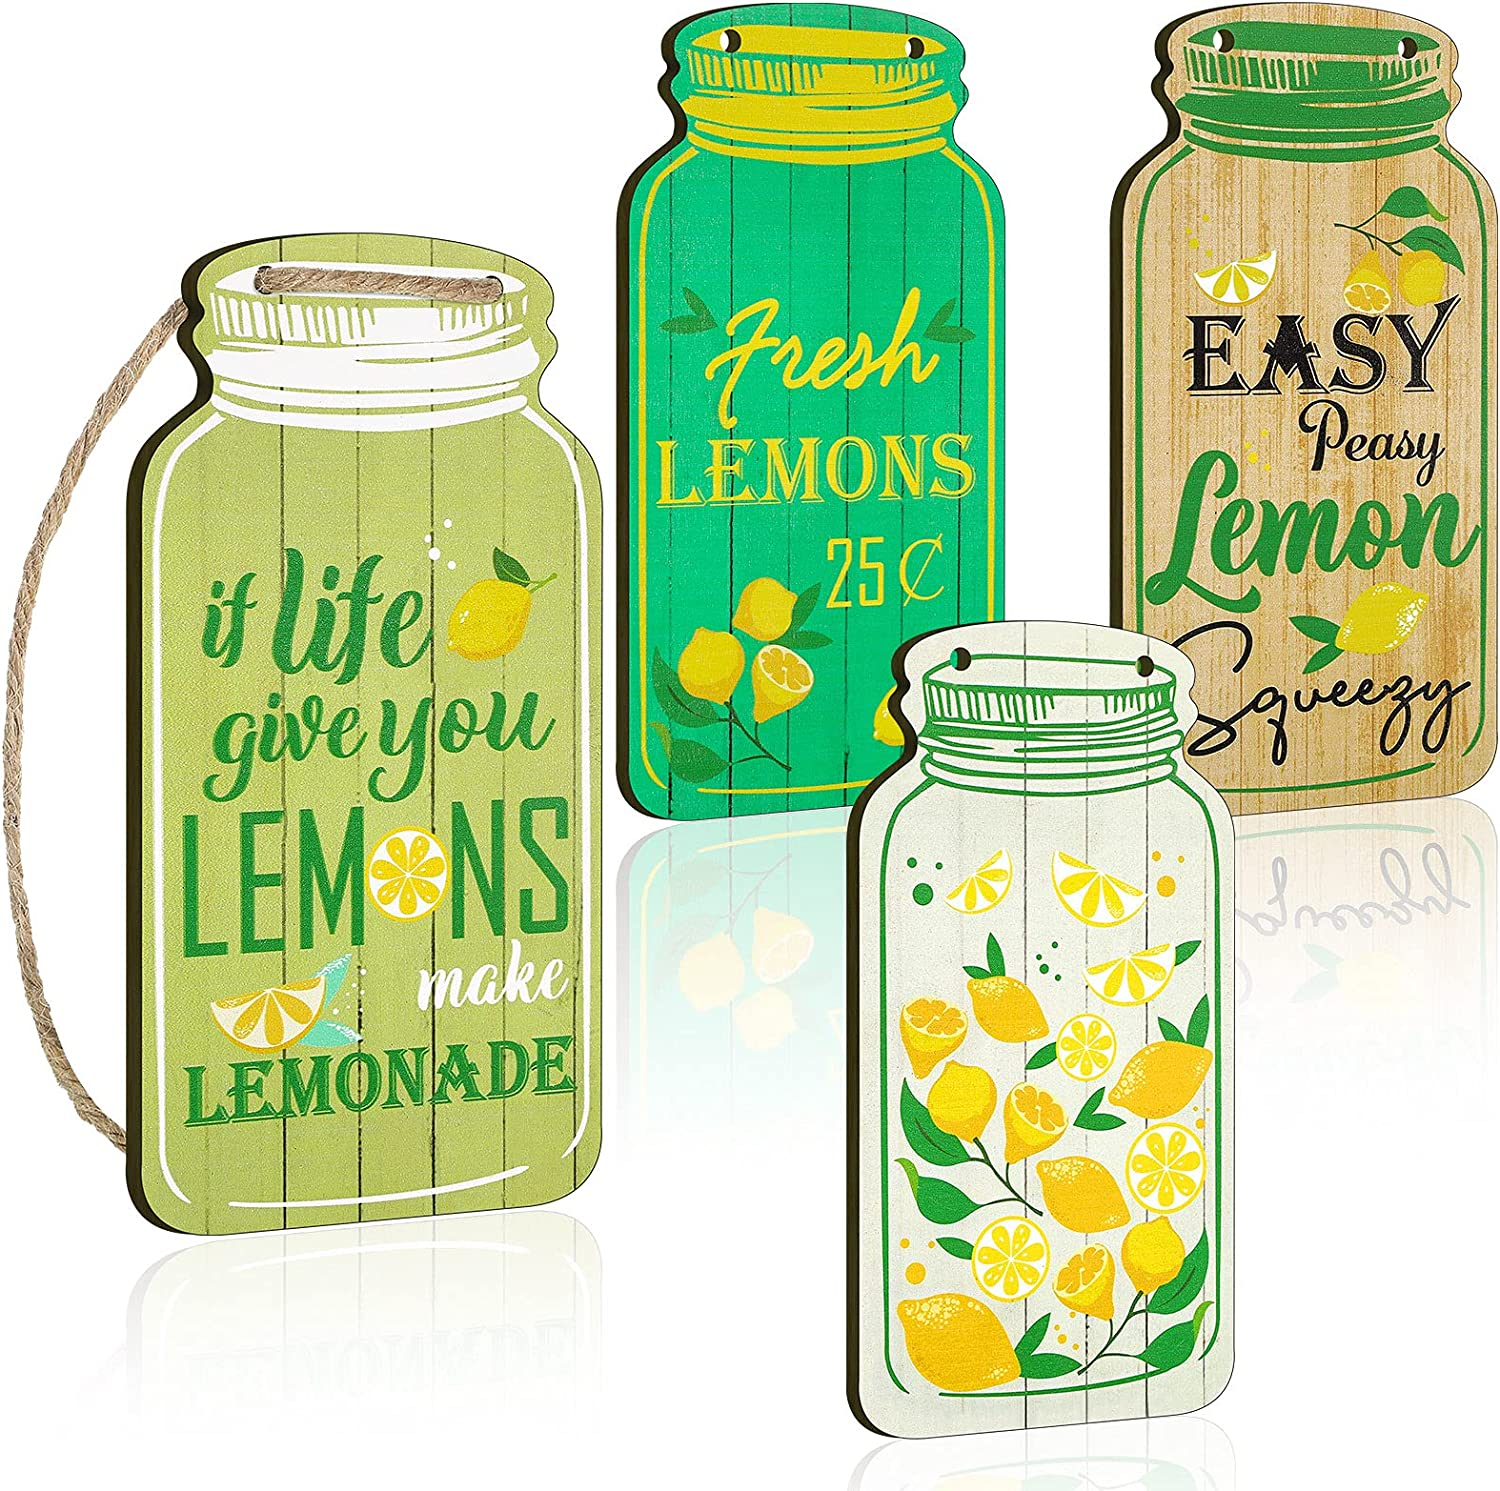 4 Pieces Mason Jar Wall Hanging Plaque Lemon Wooden Tiered Tray Decor Easy Peasy Lemon Squeezy Rustic Farmhouse Hanging Lemon Decor Sign for Home Living Room Coffee Bar Kitchen Office Housewarming